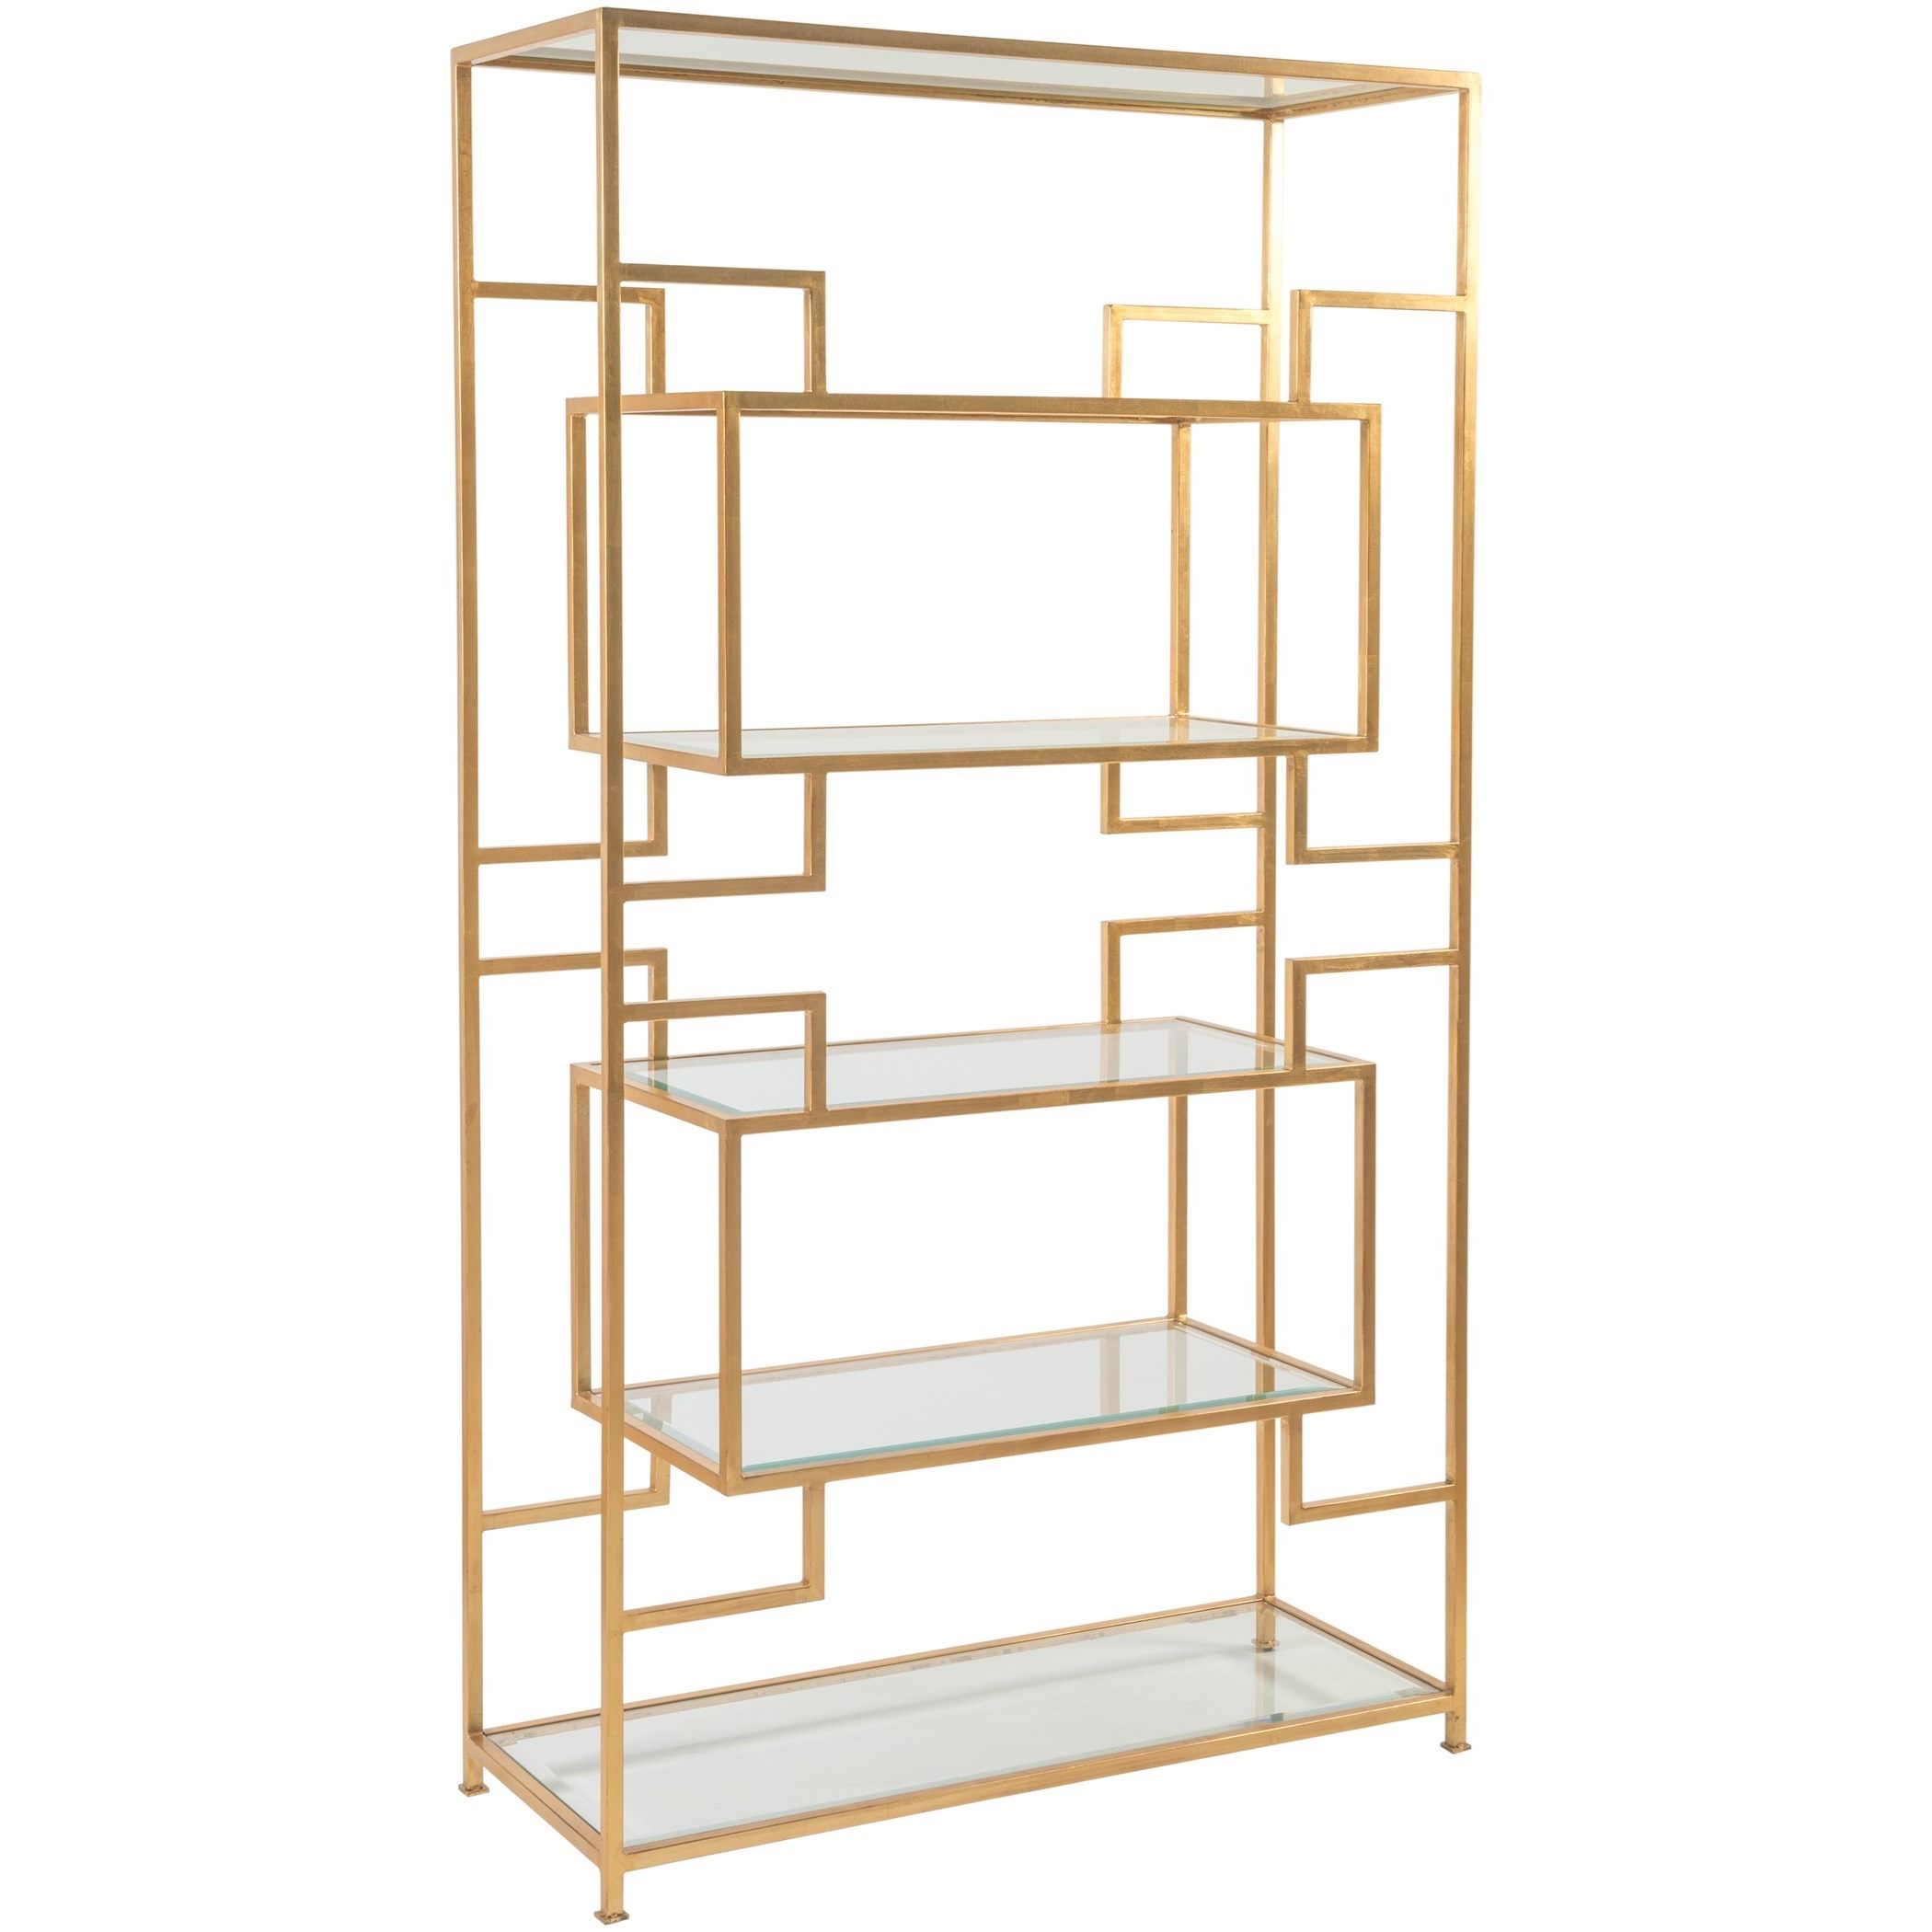 Metal Designs Suspension Etagere by Artistica at Alison Craig Home Furnishings